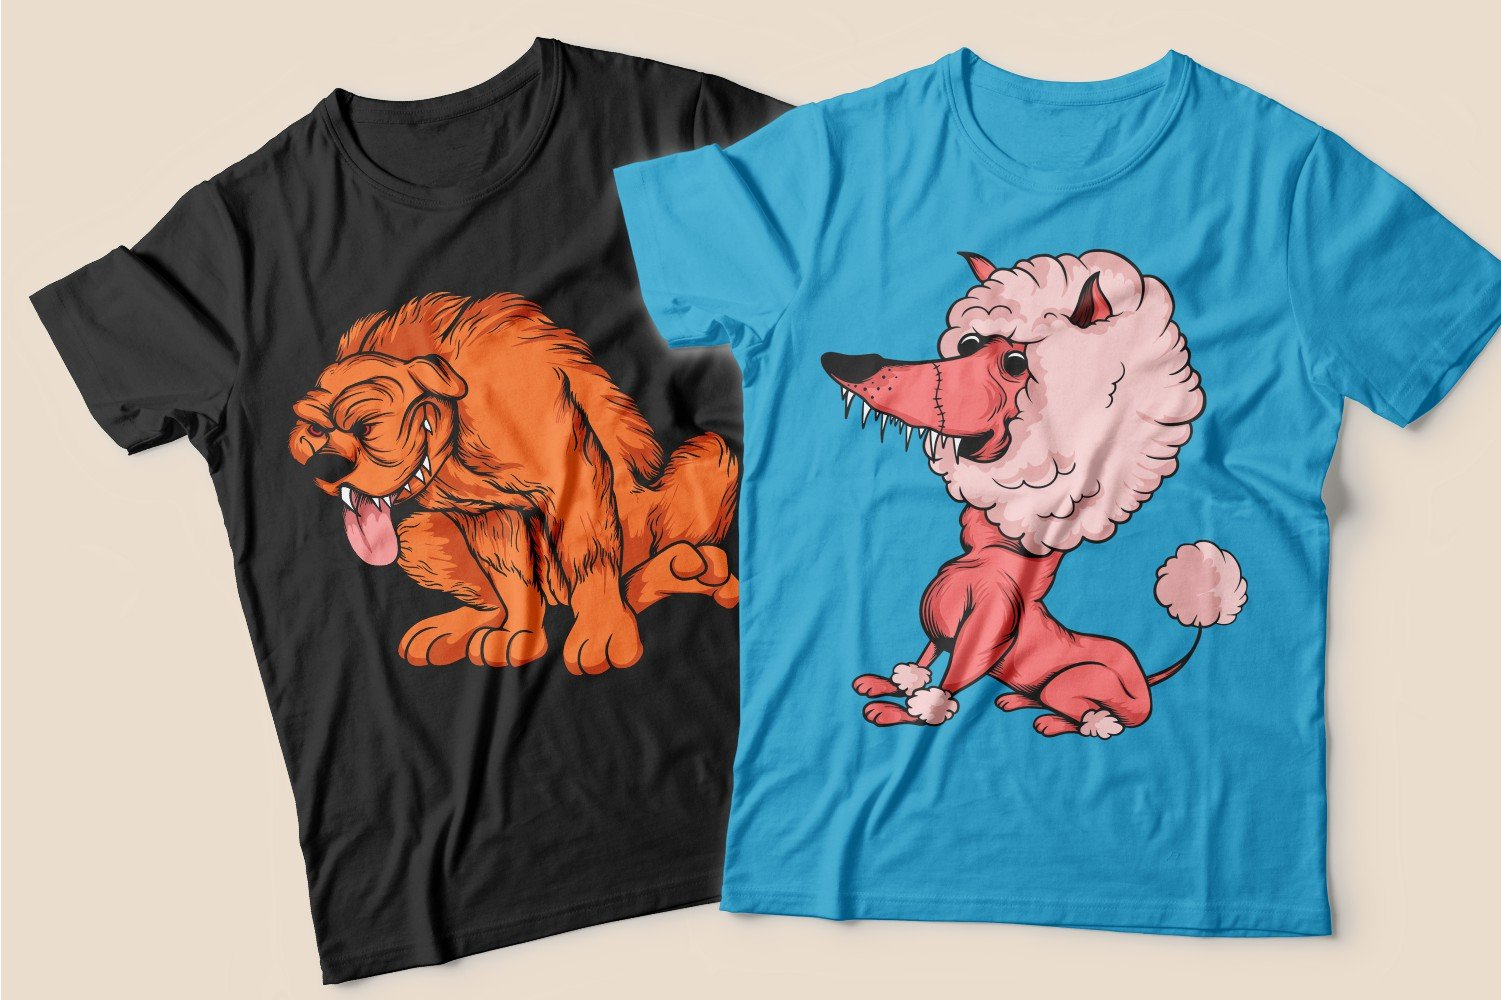 Two T-shirts: black with a sly red dog and blue with a pink poodle.